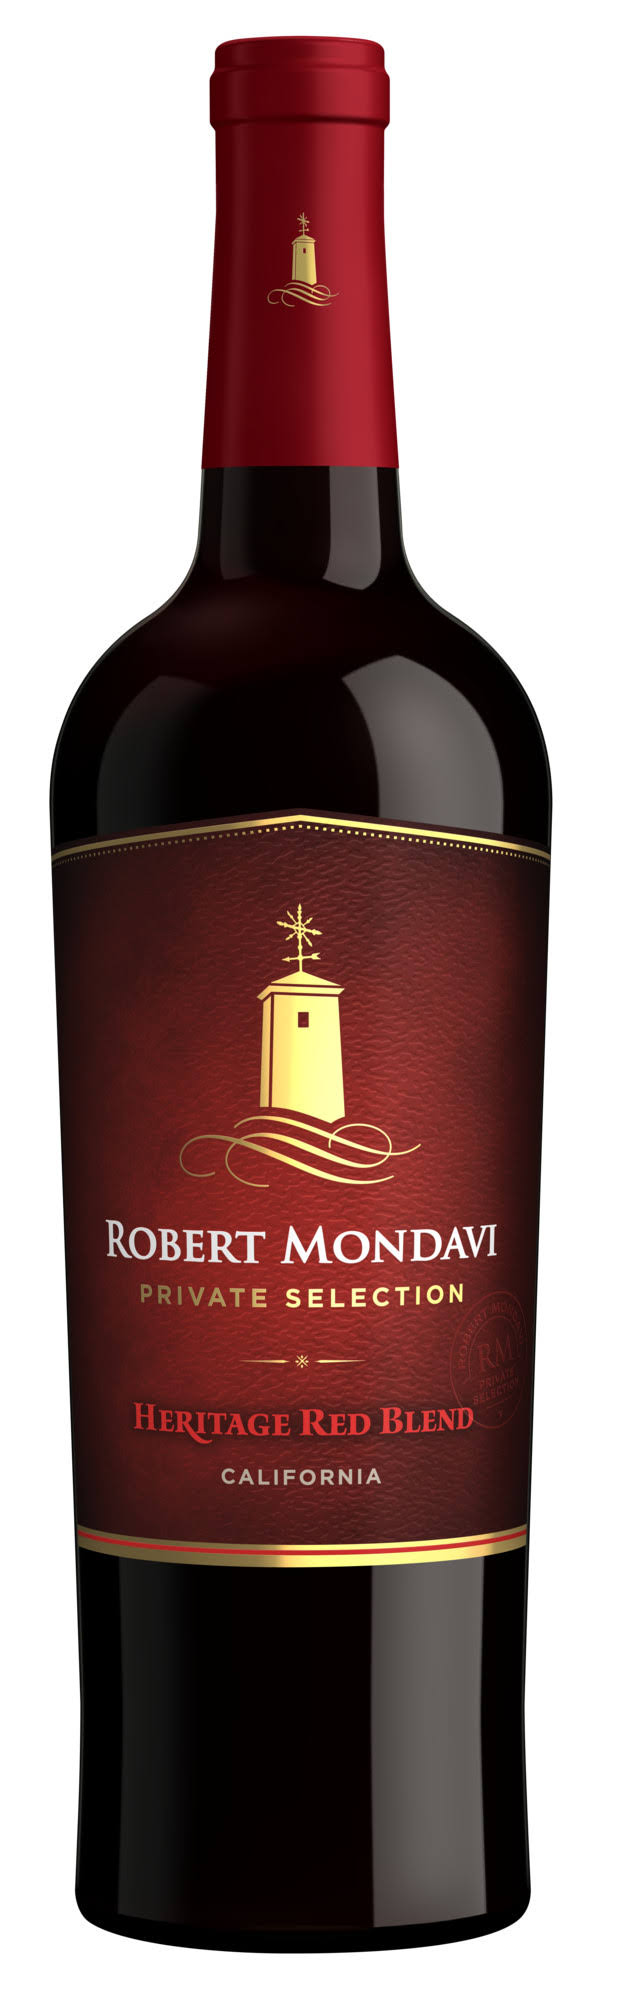 Robert Mondavi Private Selection Heritage Red Blend